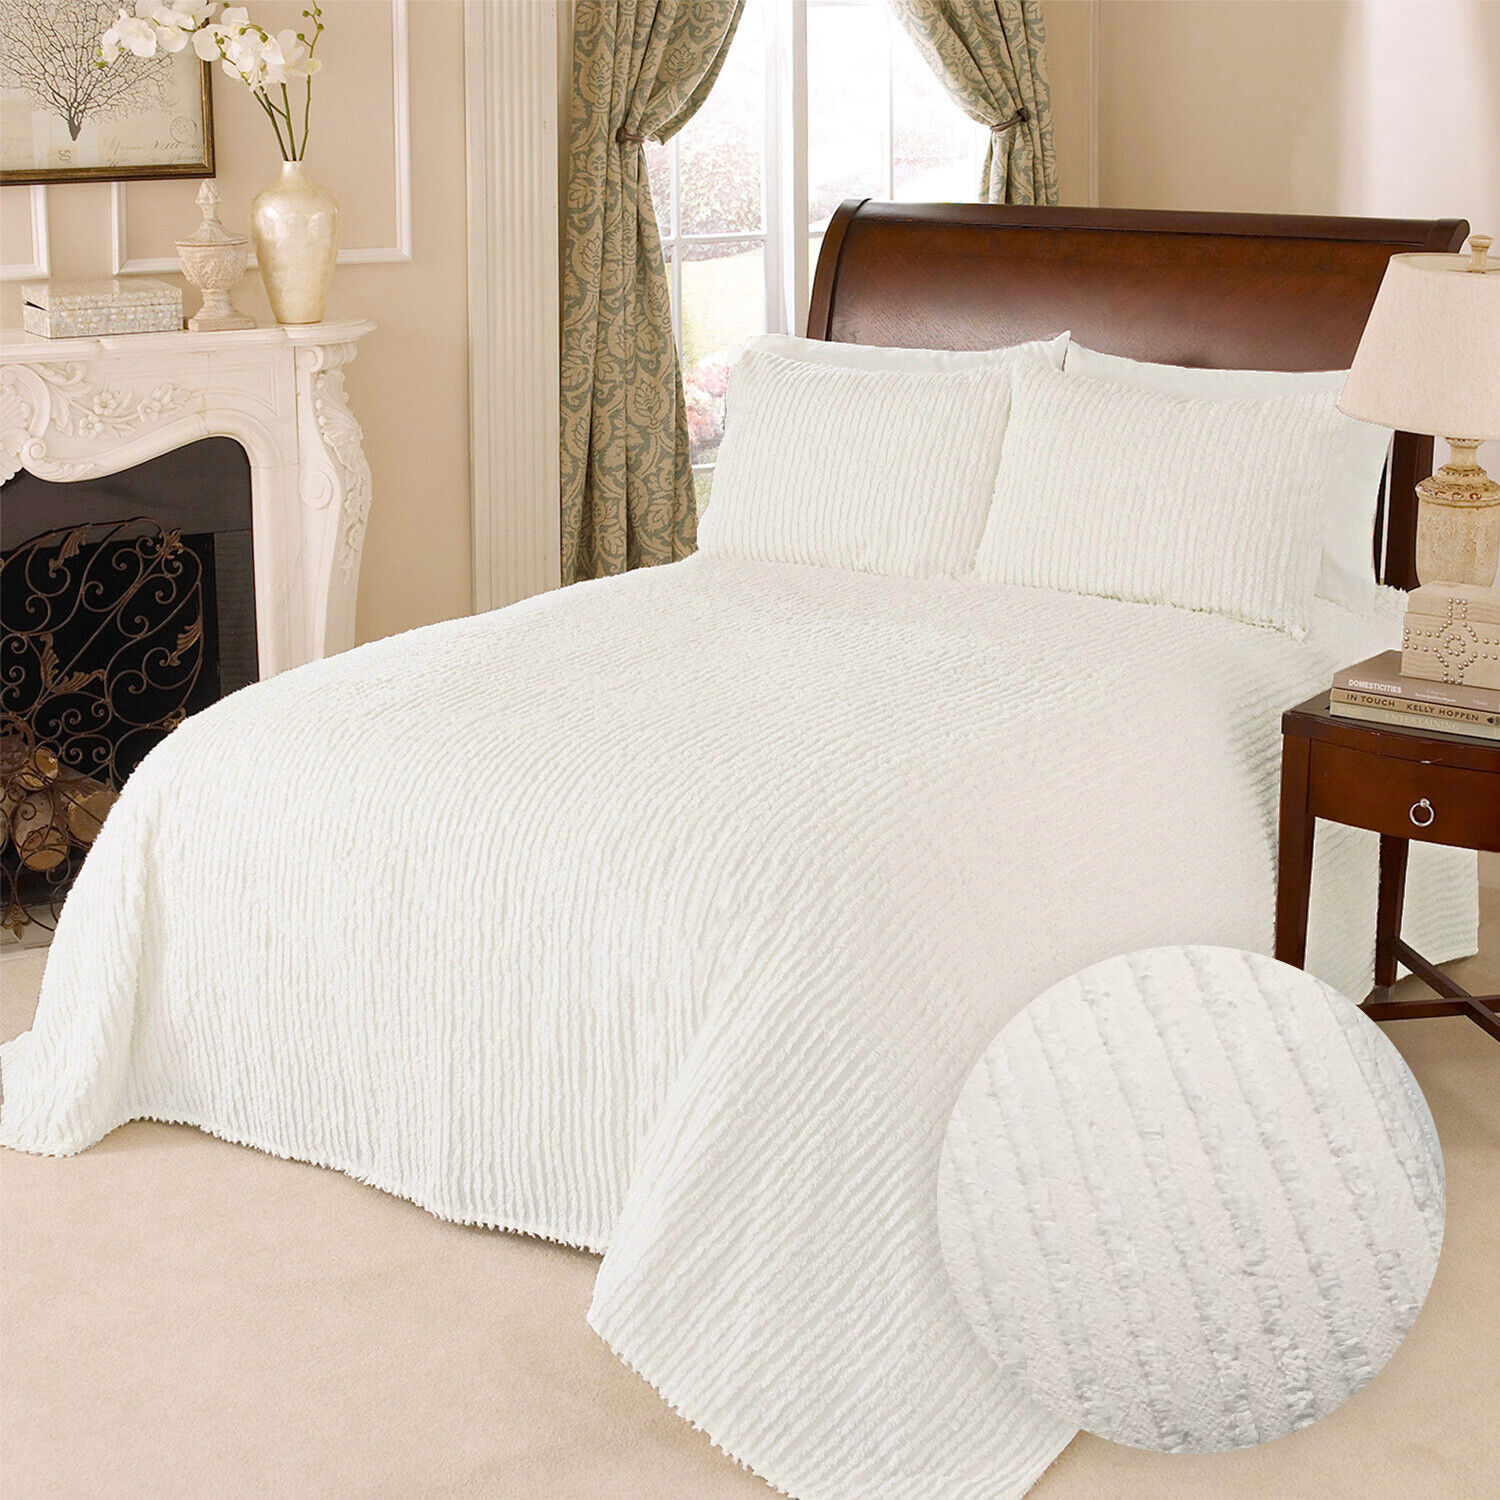 100% Cotton Tufted Chenille Stripe Bedspread Bedding Twin Full Queen King, White Bedding